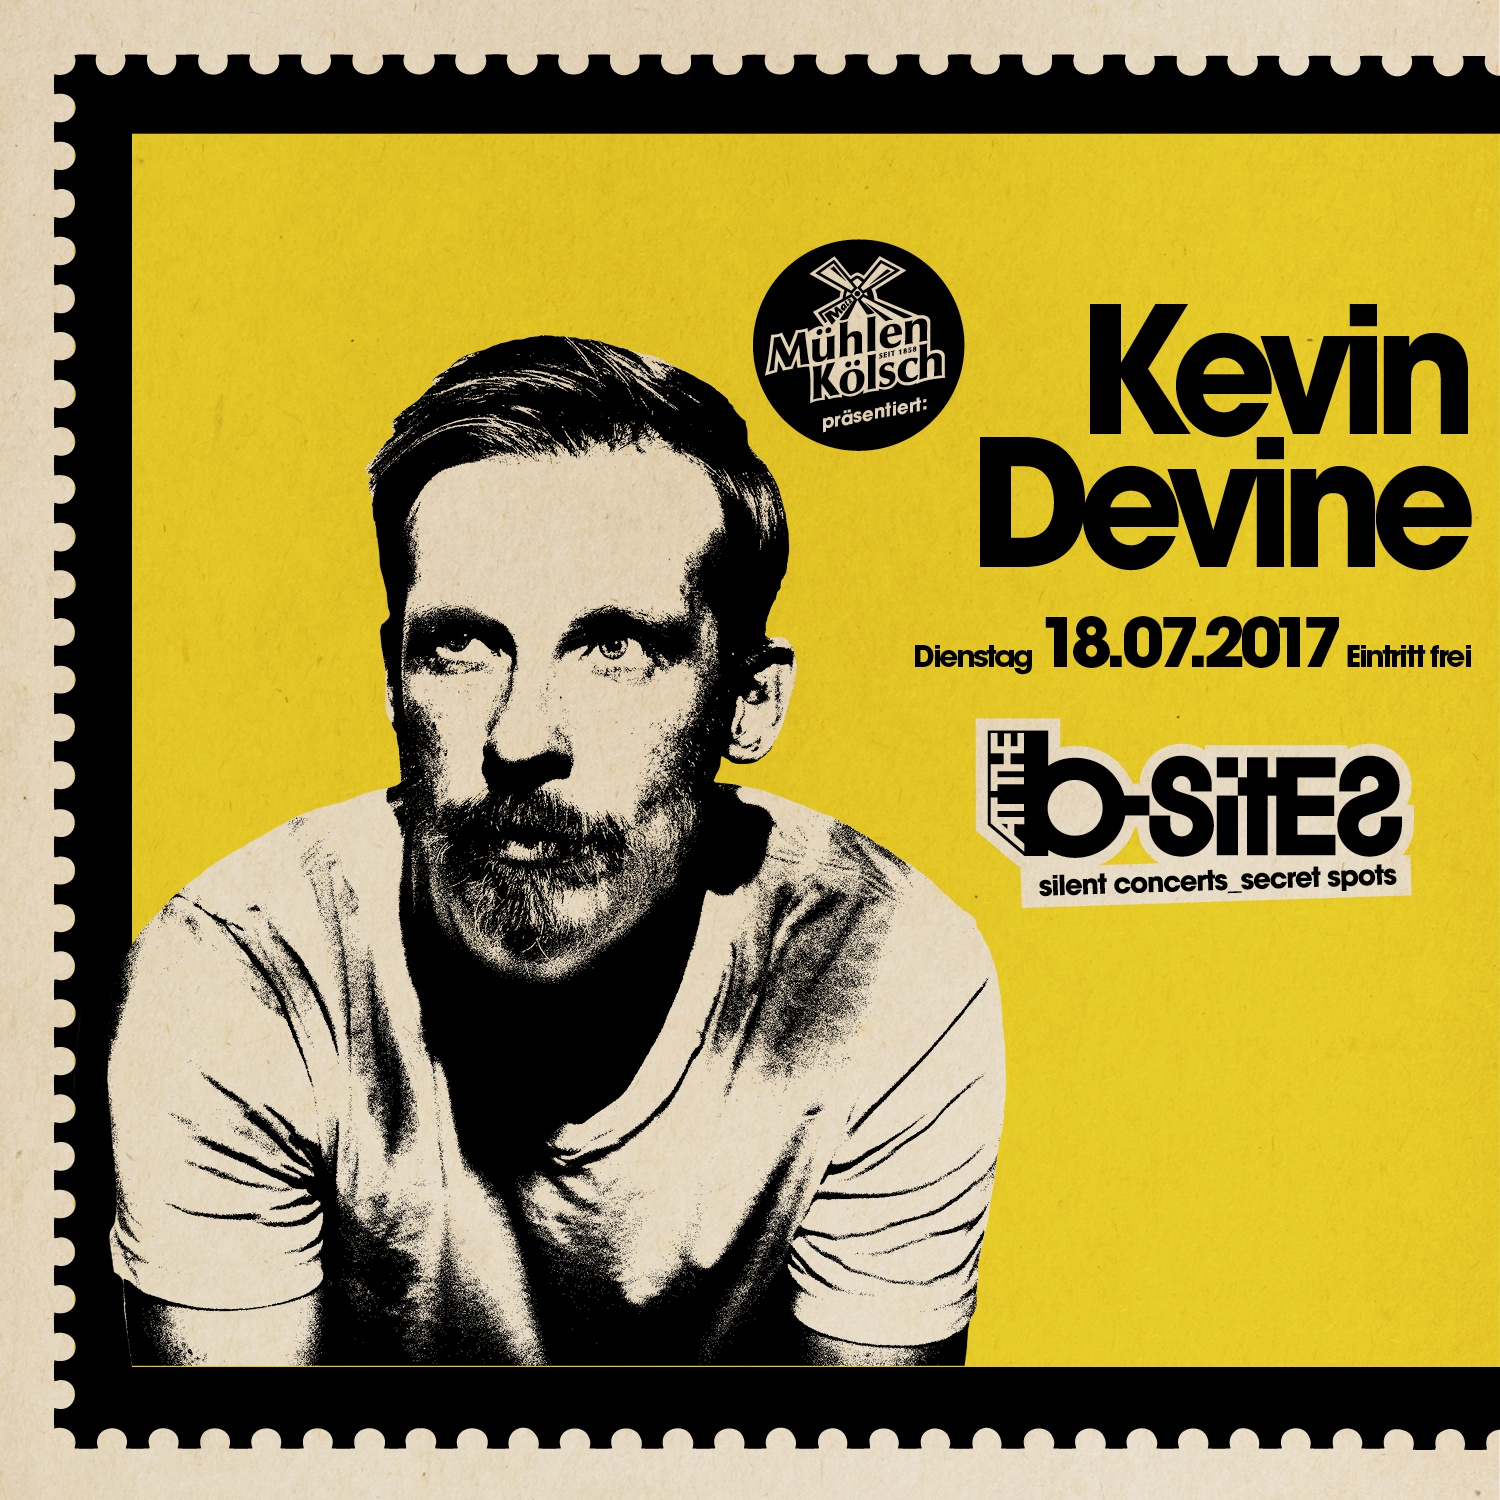 KEVIN DEVINE at the b-sites